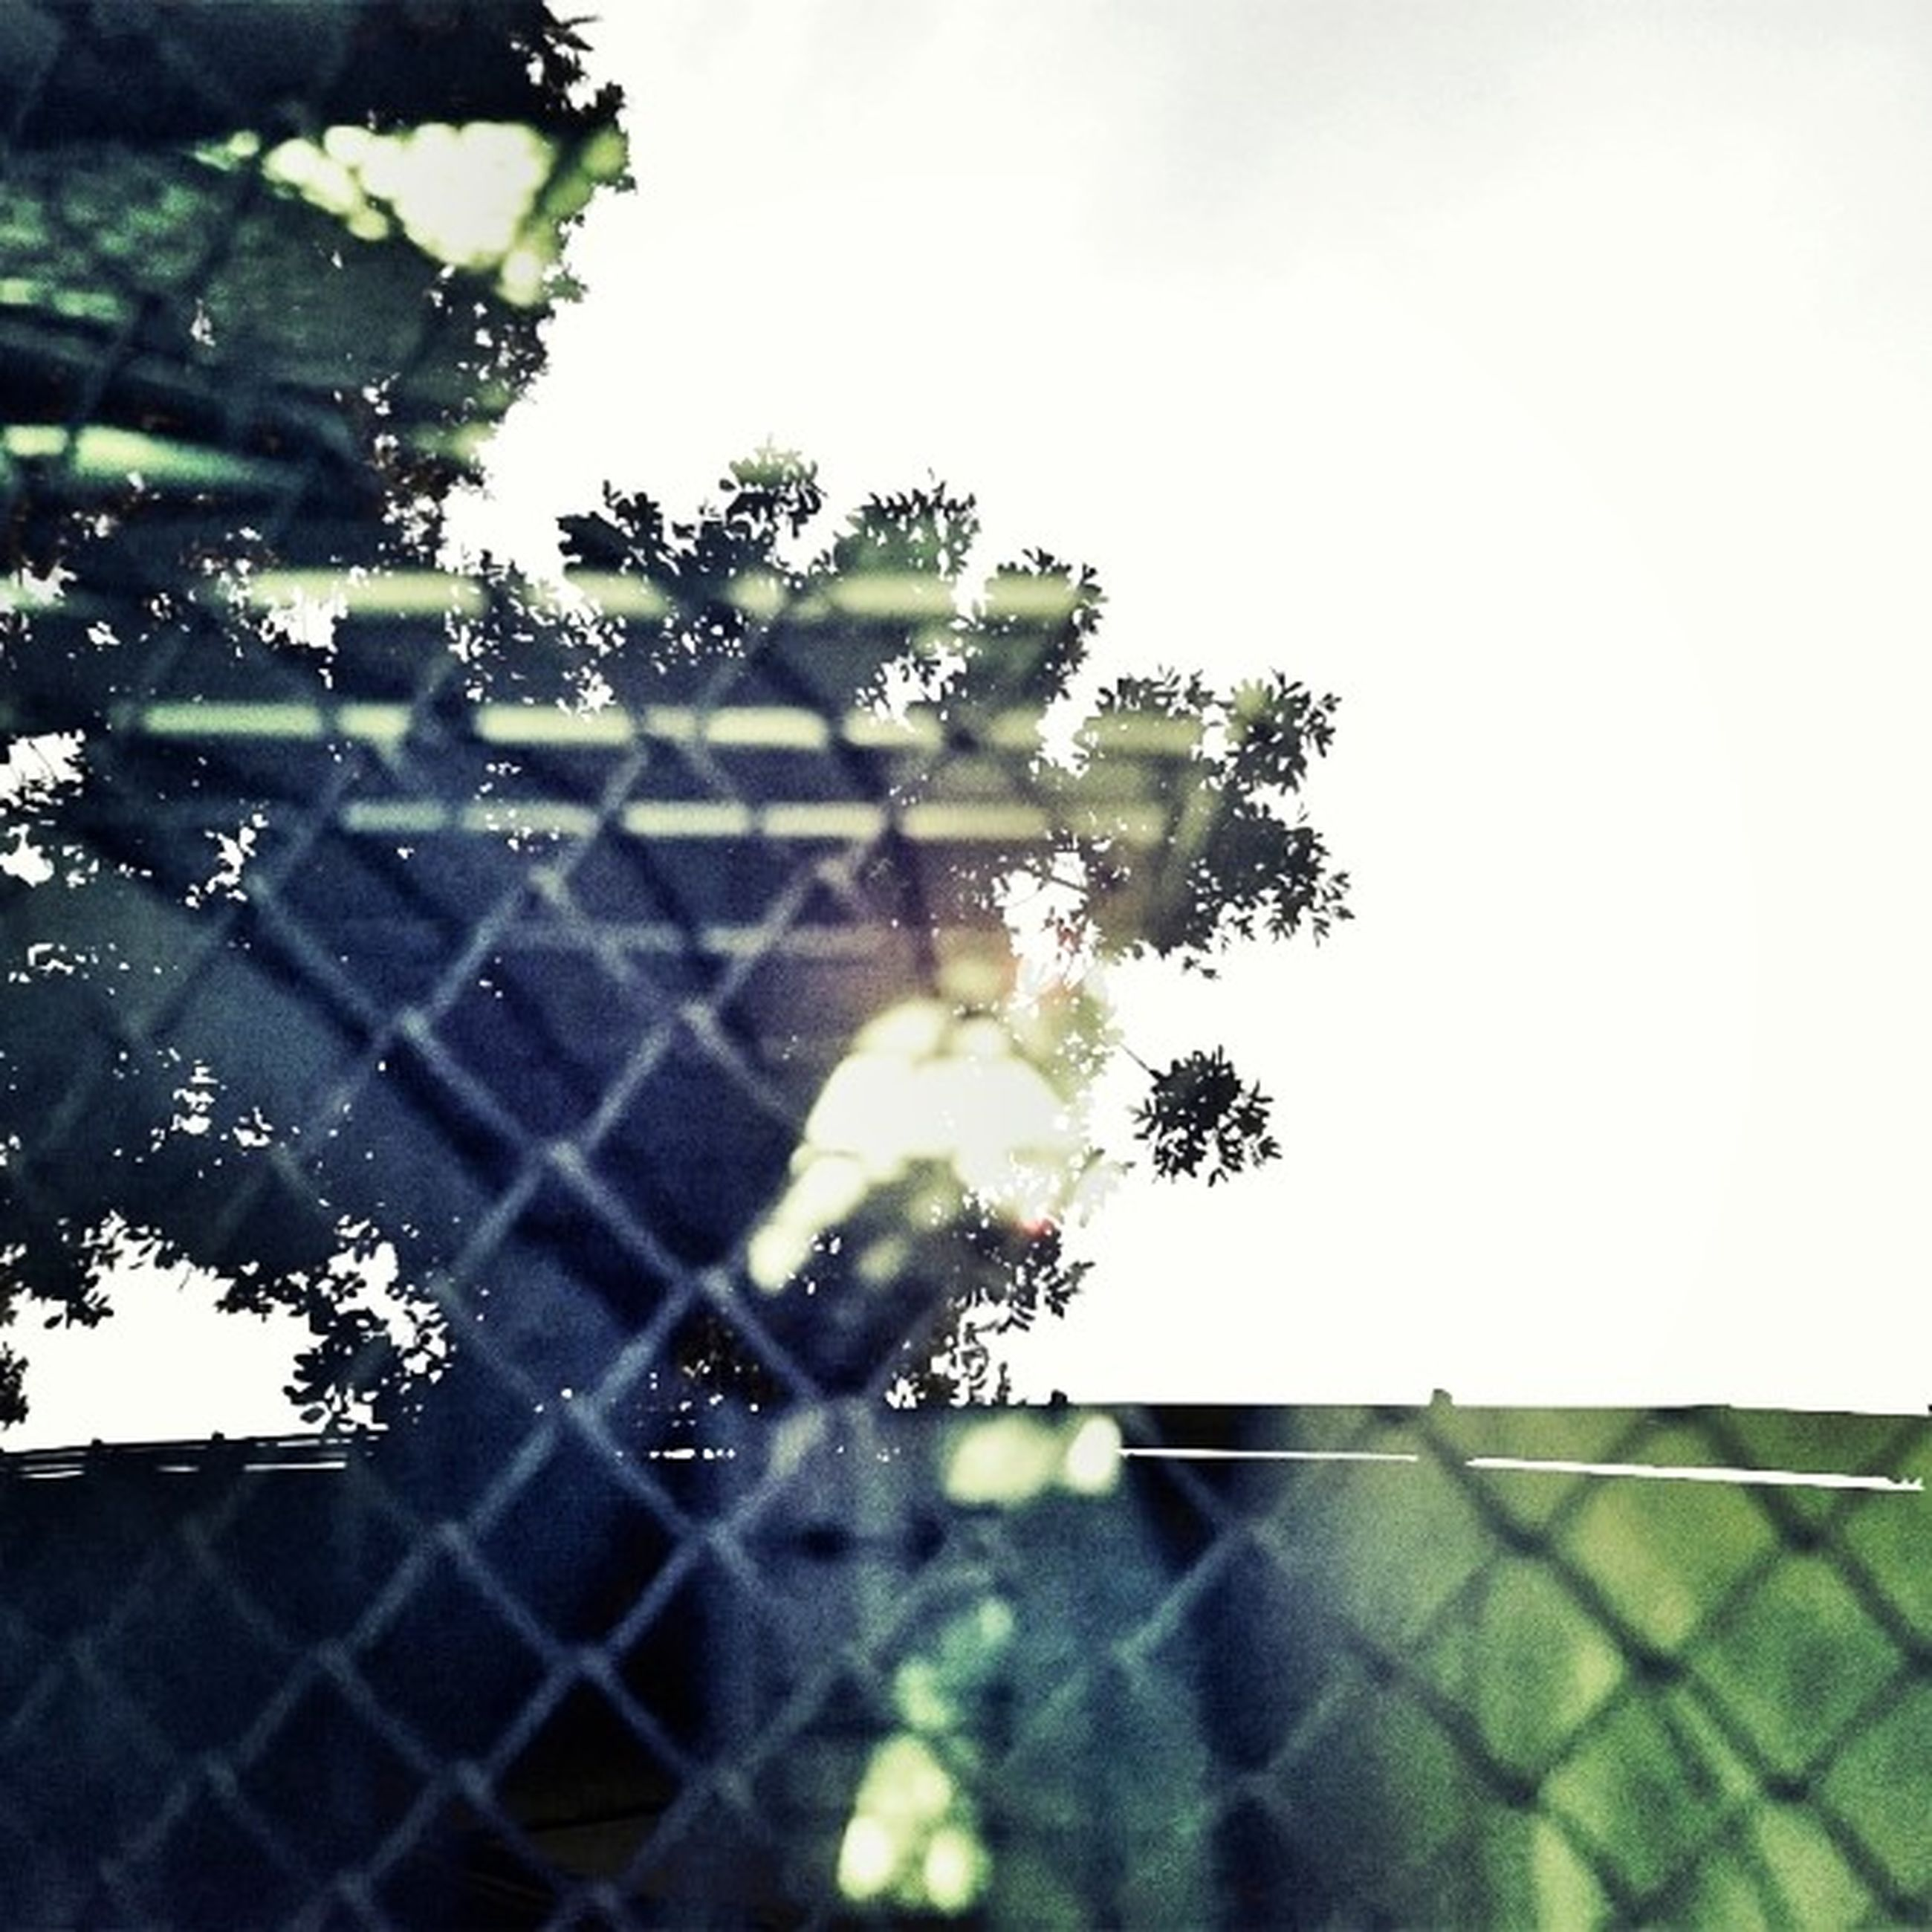 growth, plant, close-up, sky, leaf, sunlight, focus on foreground, fence, clear sky, wall - building feature, nature, day, tree, building exterior, pattern, built structure, outdoors, no people, low angle view, architecture